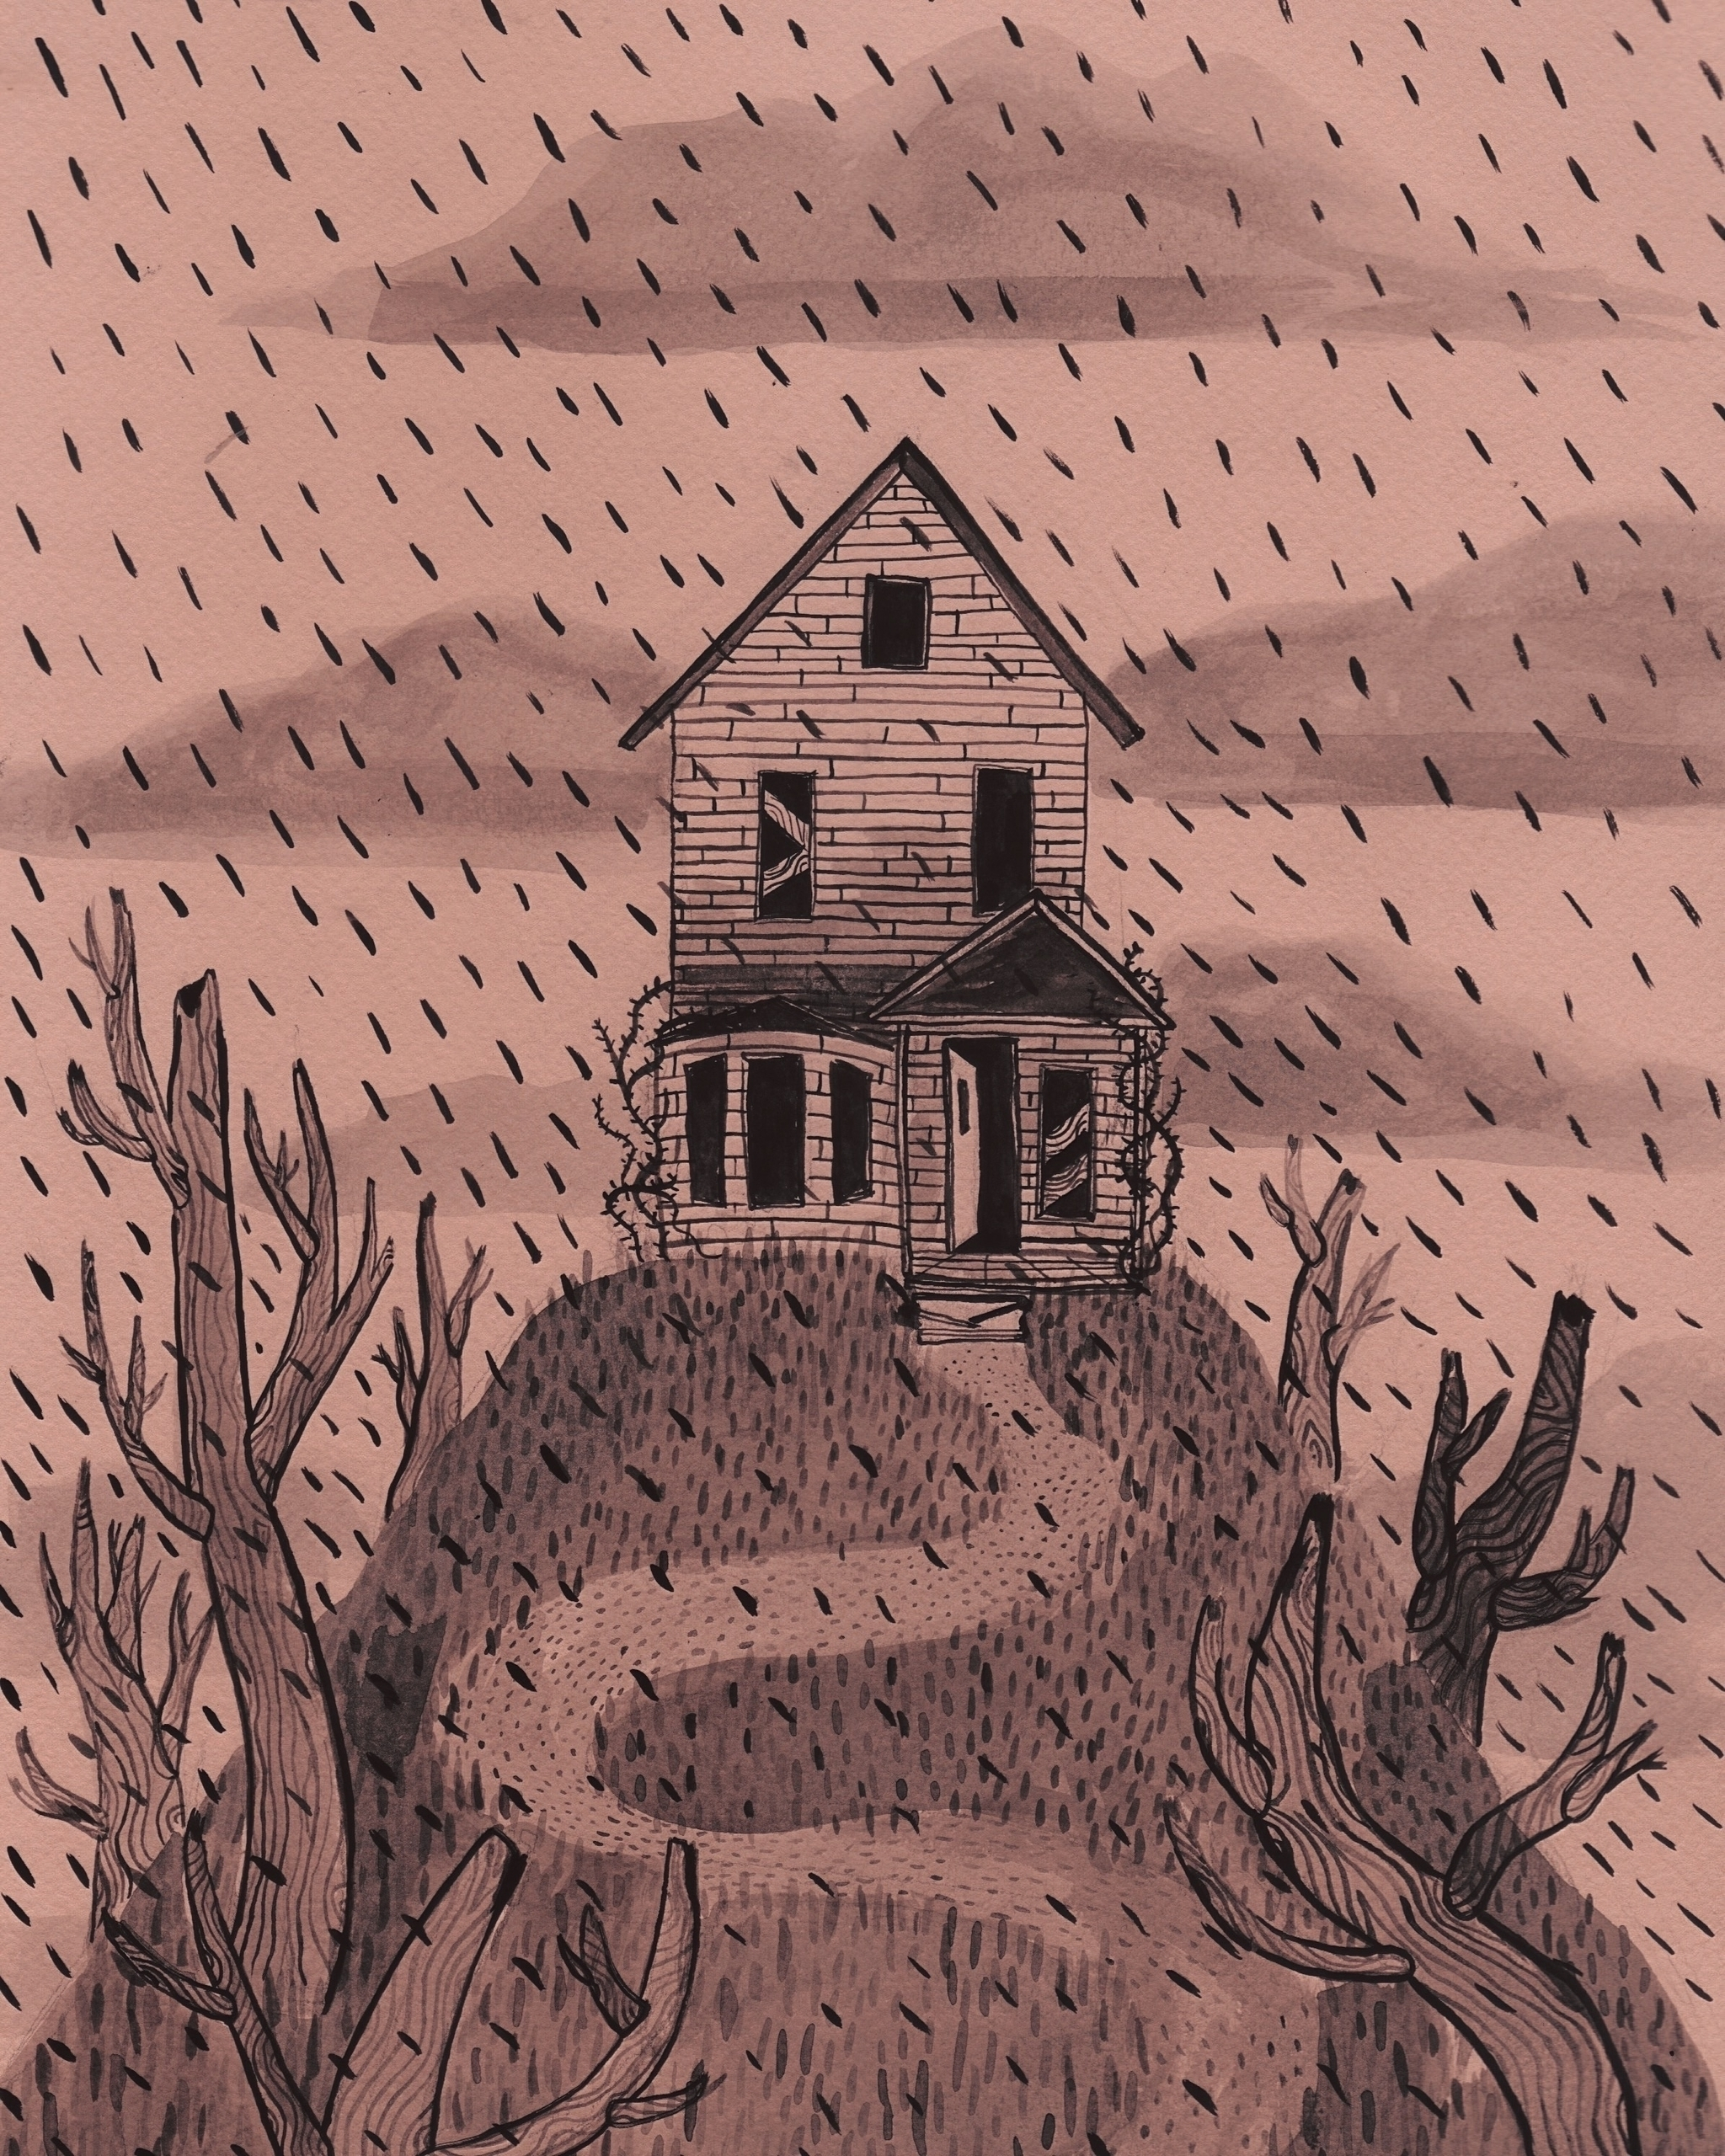 Drawn house abandoned house Illustration – Ontario Ello Exploration